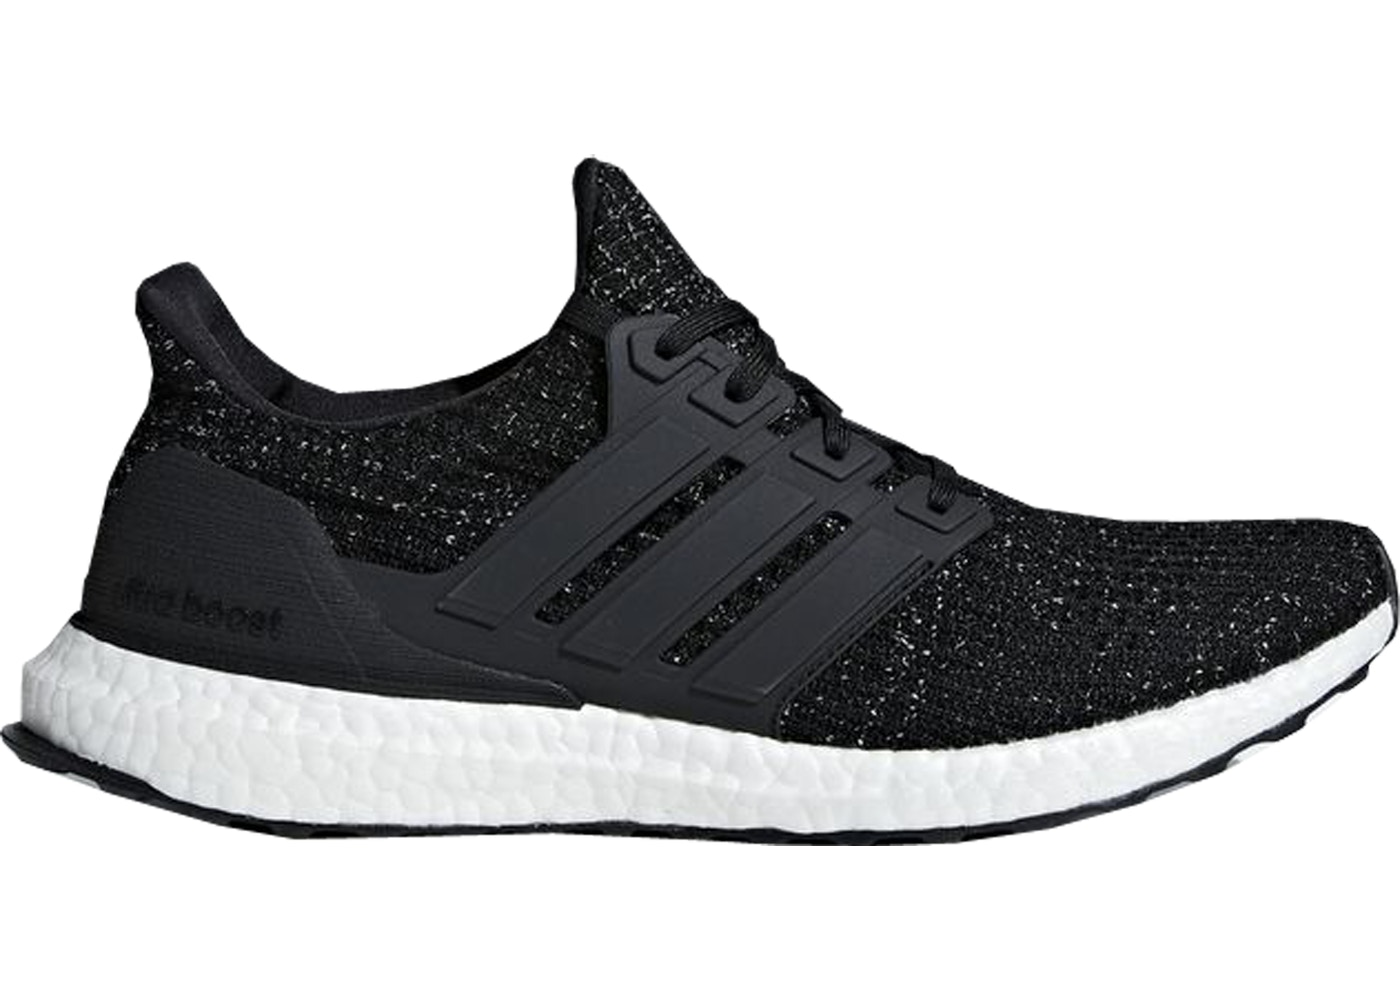 588a2fe913d79 adidas Ultra Boost 4.0 Black White Speckle - F36153